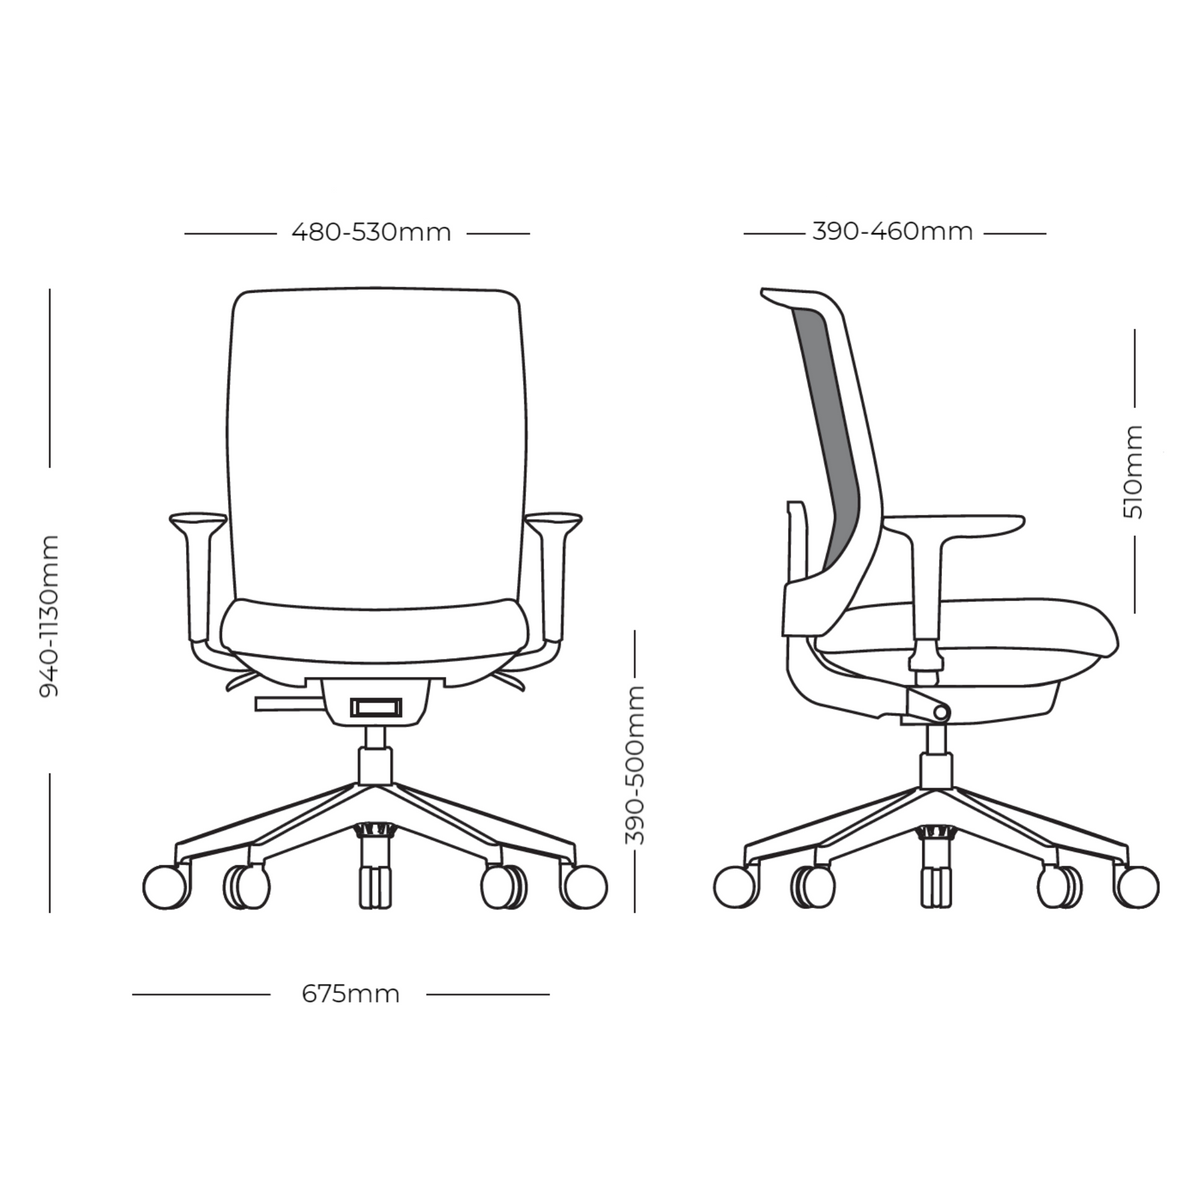 Dimensions for Actiu Office Trim 50 Task Chair